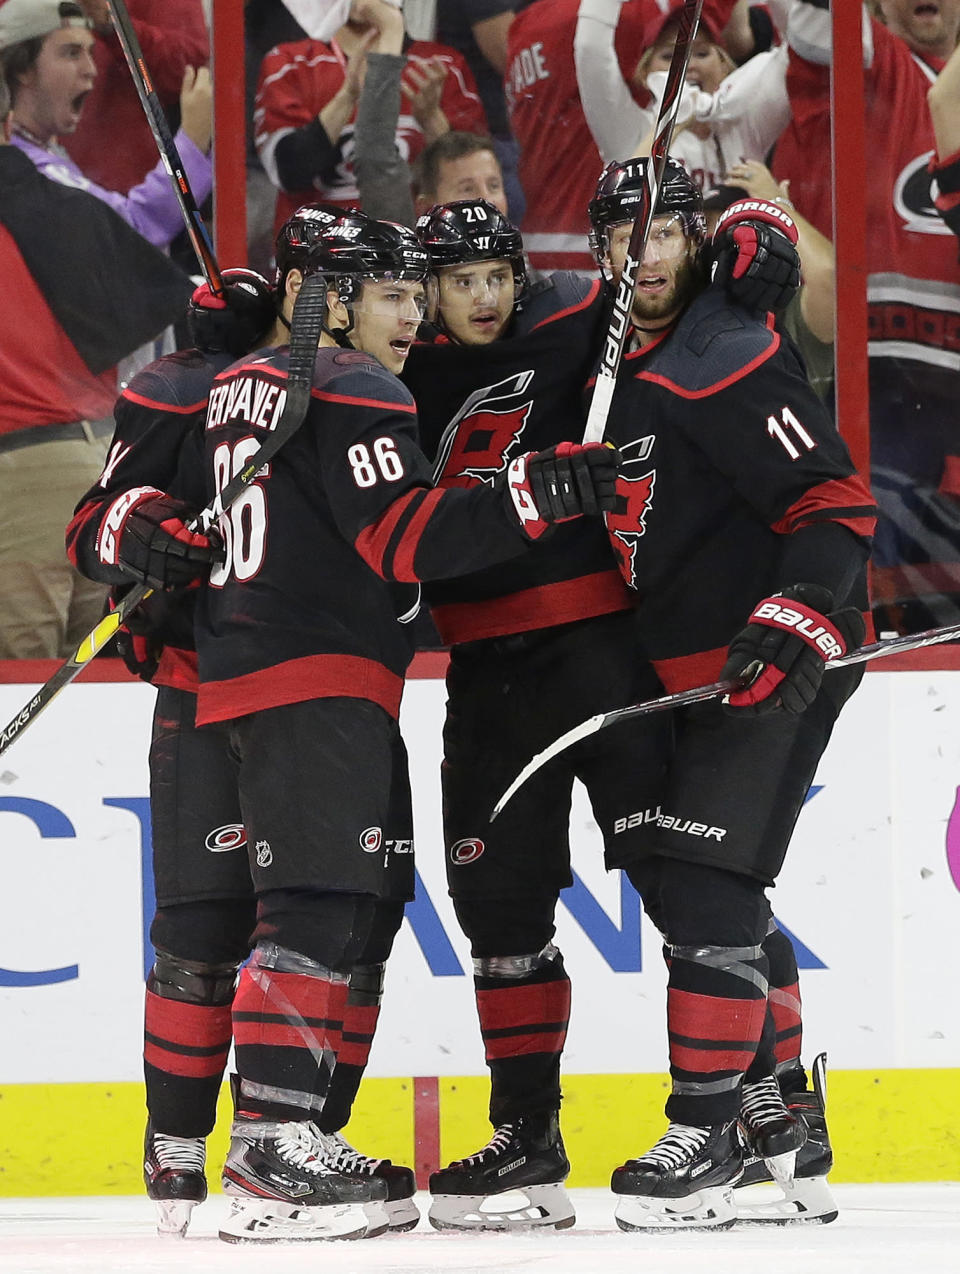 Carolina Hurricanes' Teuvo Teravainen (86), of Finland, Sebastian Aho (20), also of Finland, and Jordan Staal (11) celebrate Aho's goal against the New York Islanders during the first period of Game 4 of an NHL hockey second-round playoff series in Raleigh, N.C., Friday, May 3, 2019. (AP Photo/Gerry Broome)